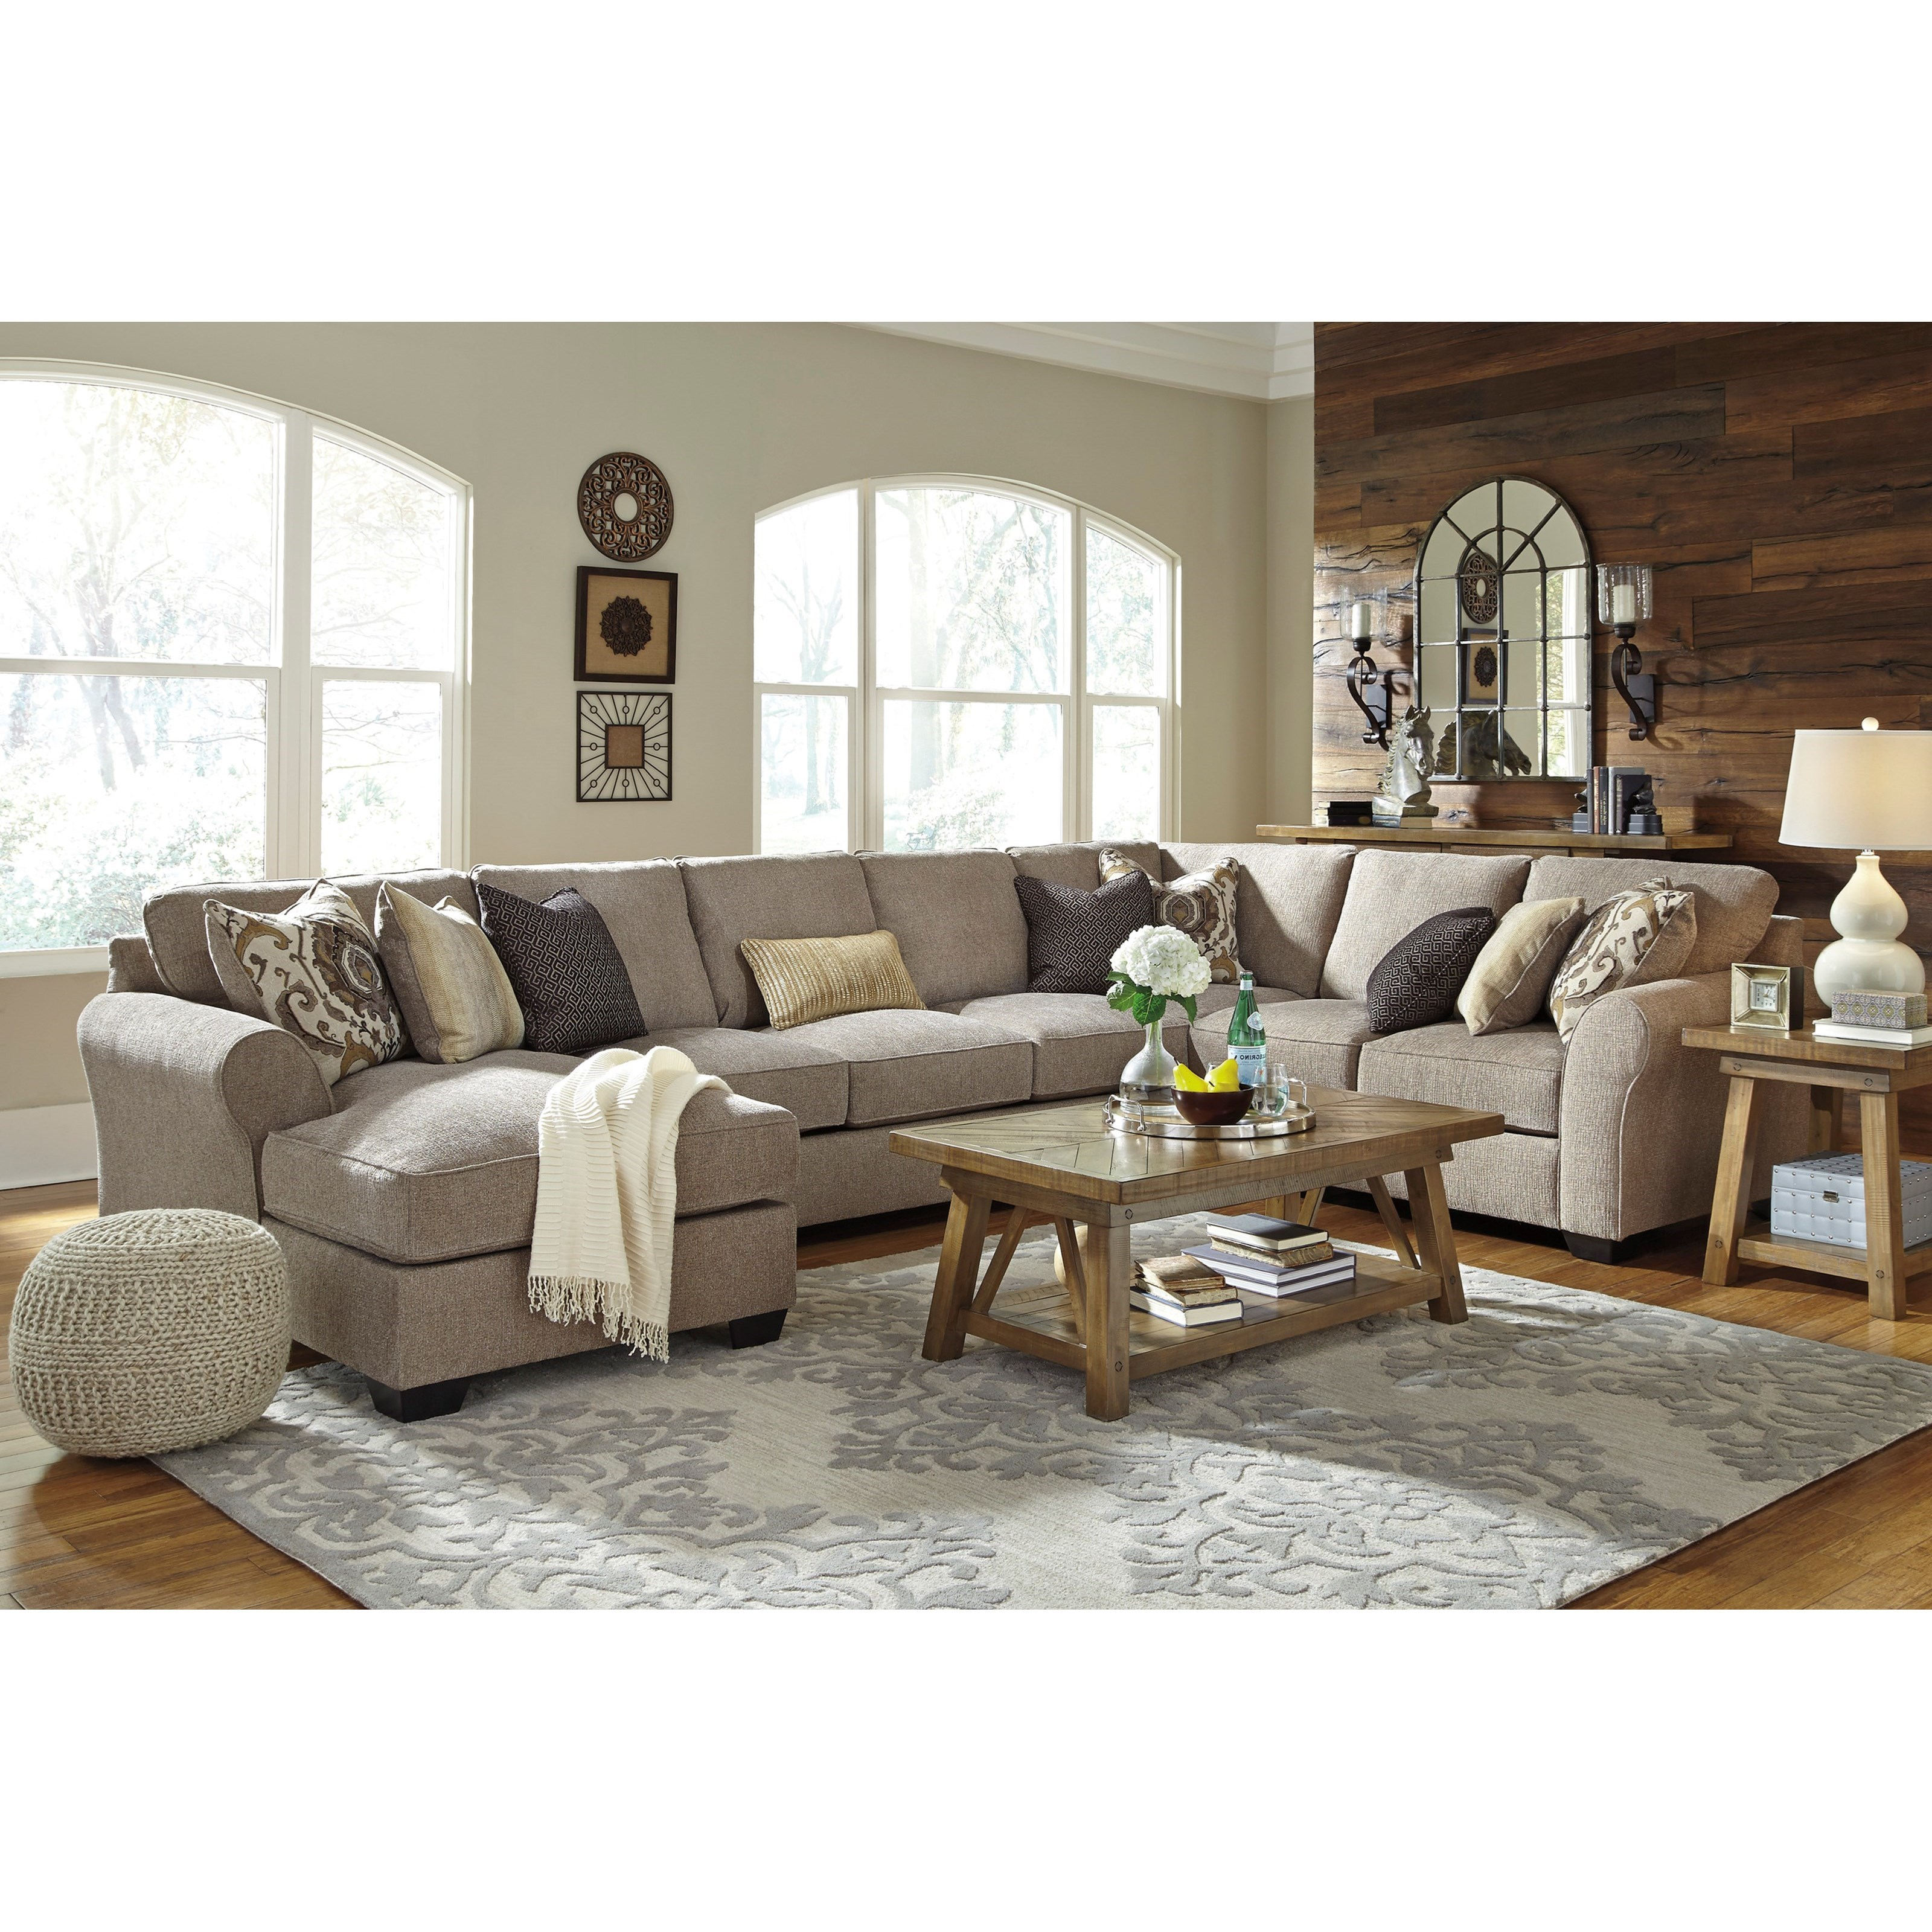 Benchcraft pantomine 4 piece sectional w left chaise for 4 piece sectional with chaise